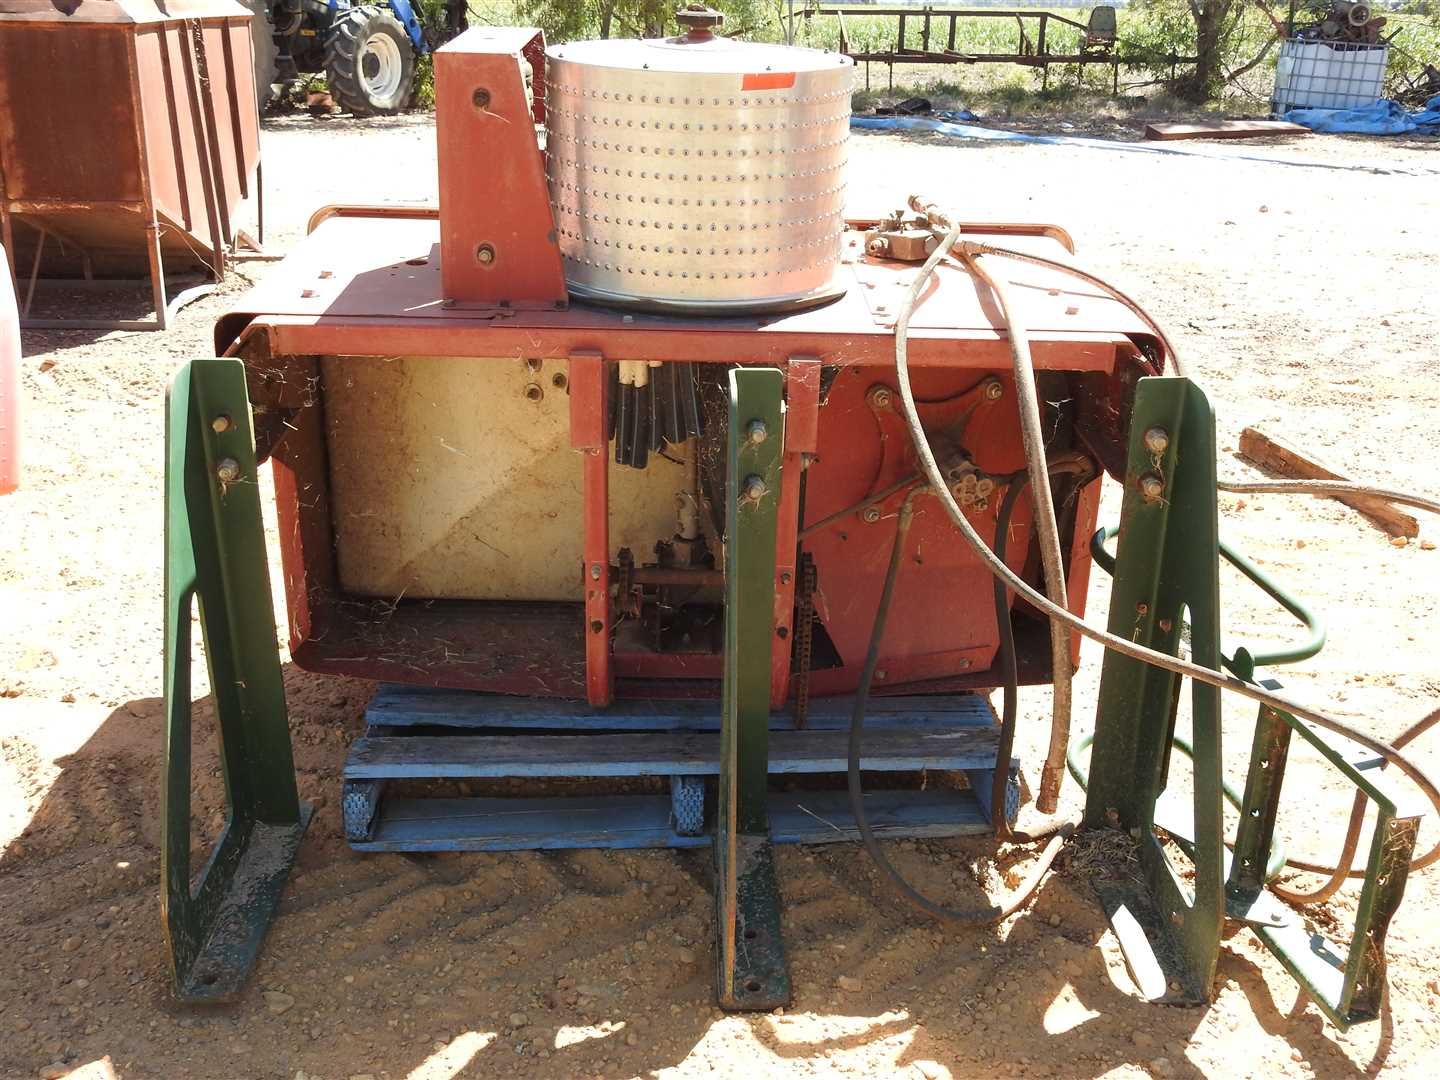 IH Cyclo planter unit- one of two